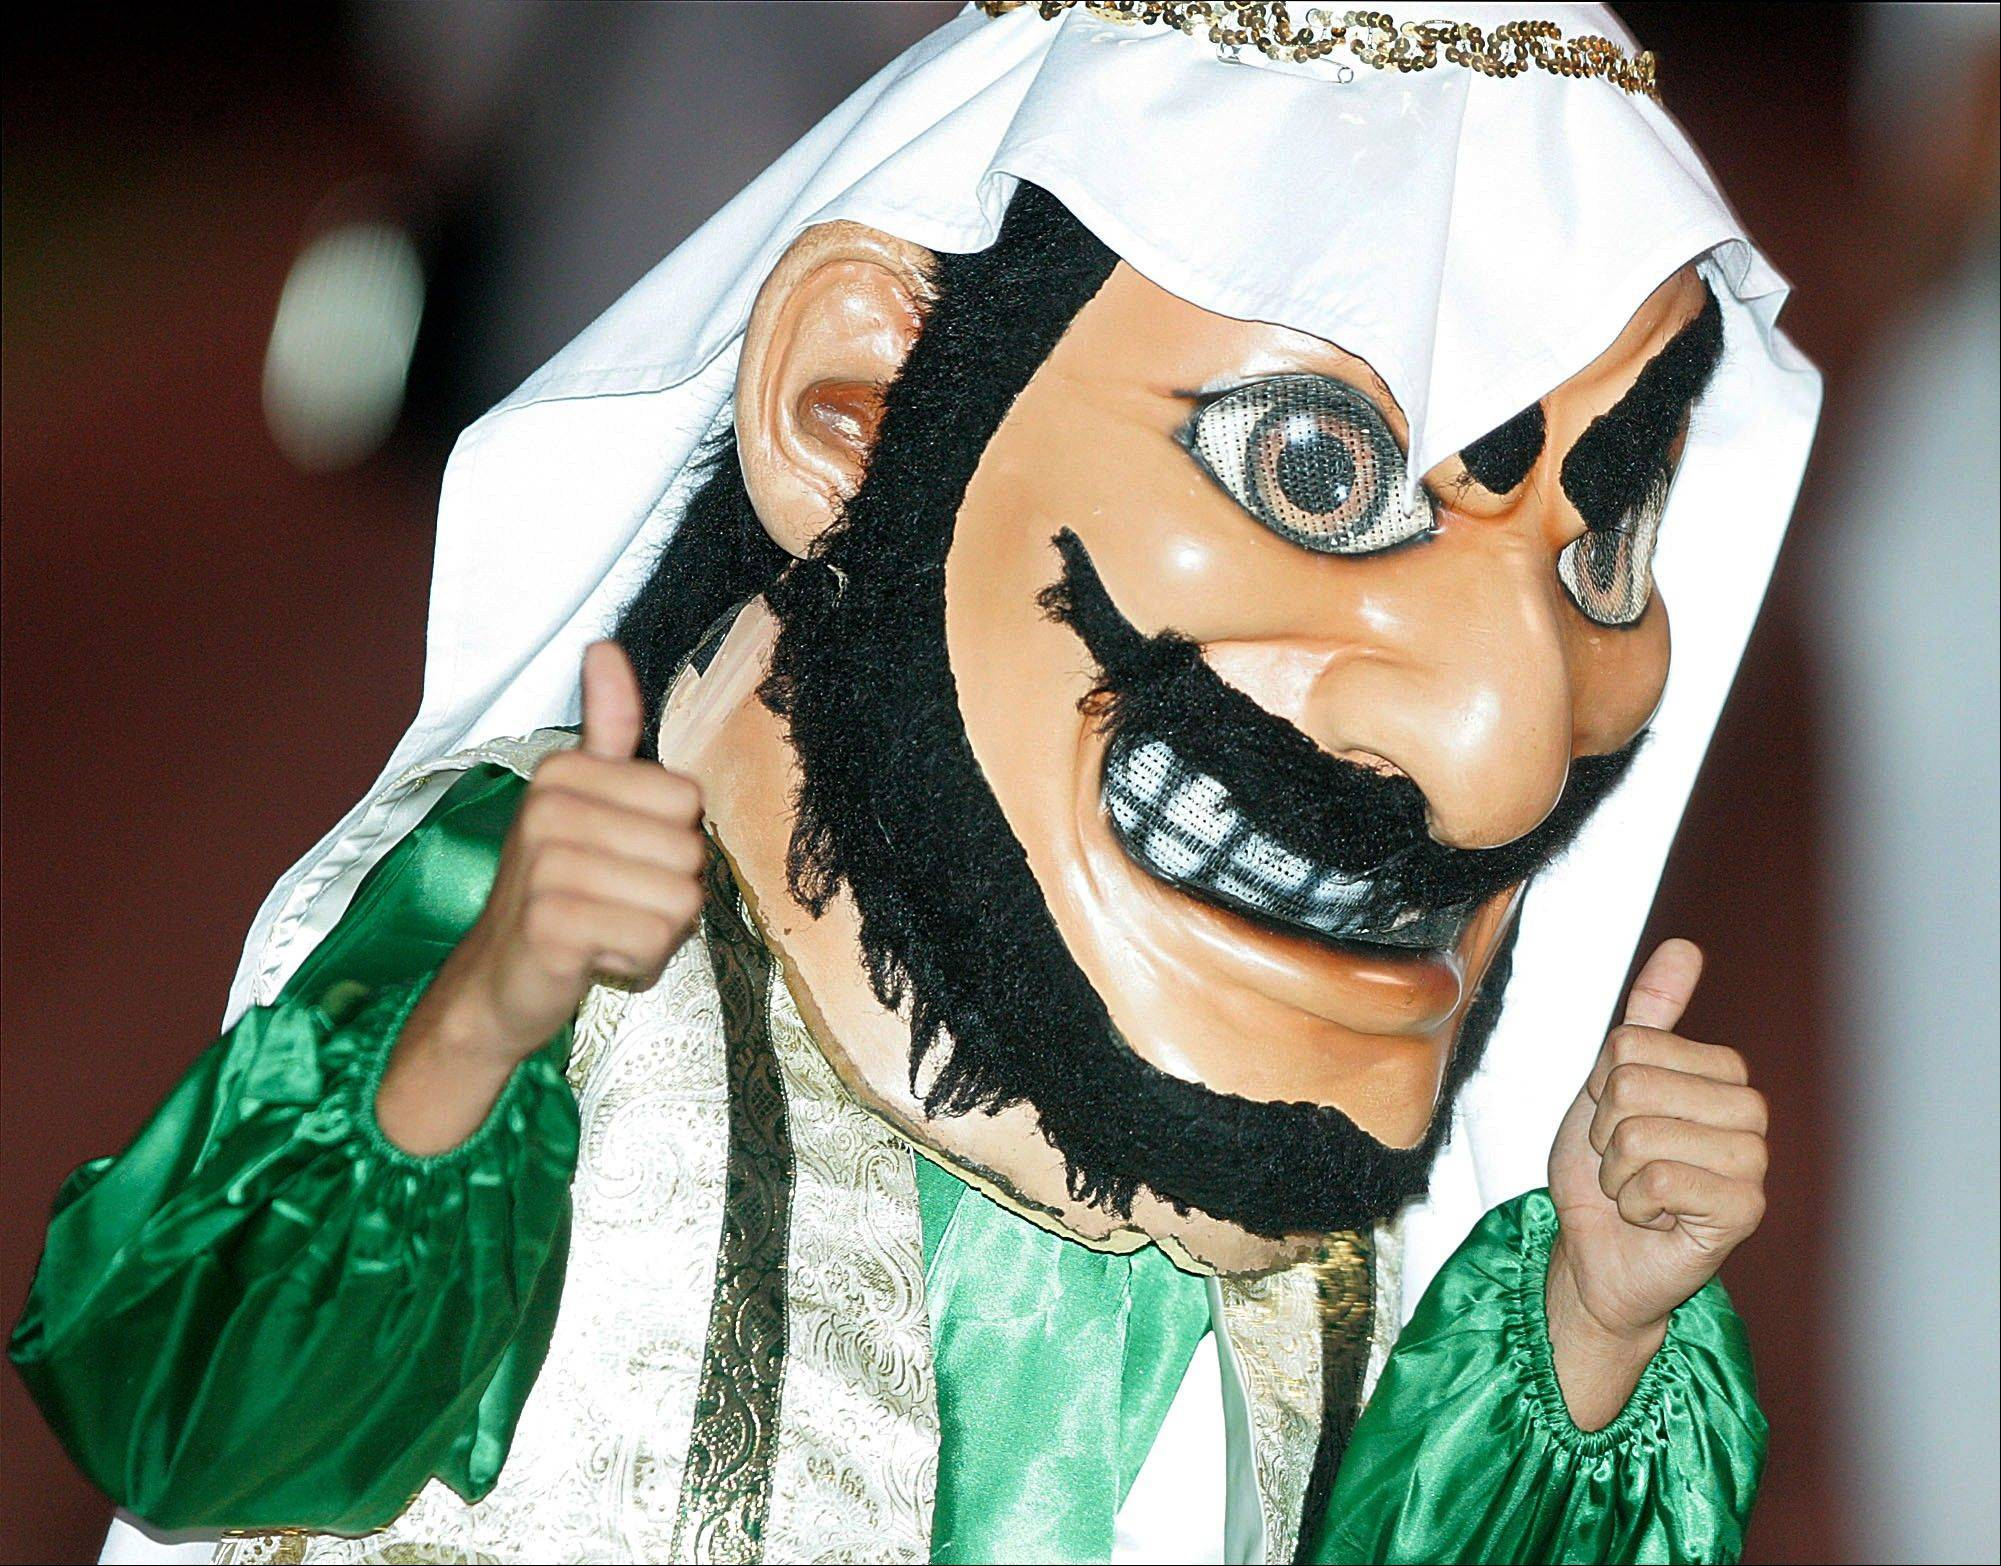 Coachella Valley High School�s mascot, �Arab,� gives the thumbs during a game against Yucca Valley, in Thermal, Calif. The American-Arab Anti-Discrimination Committee is calling on the Southern California high school to get rid of its long-standing mascot that it deems offensive. The mascot has been around since the 1920s and was chosen to recognize the area�s reliance on date farming, traditionally a Middle Eastern crop.